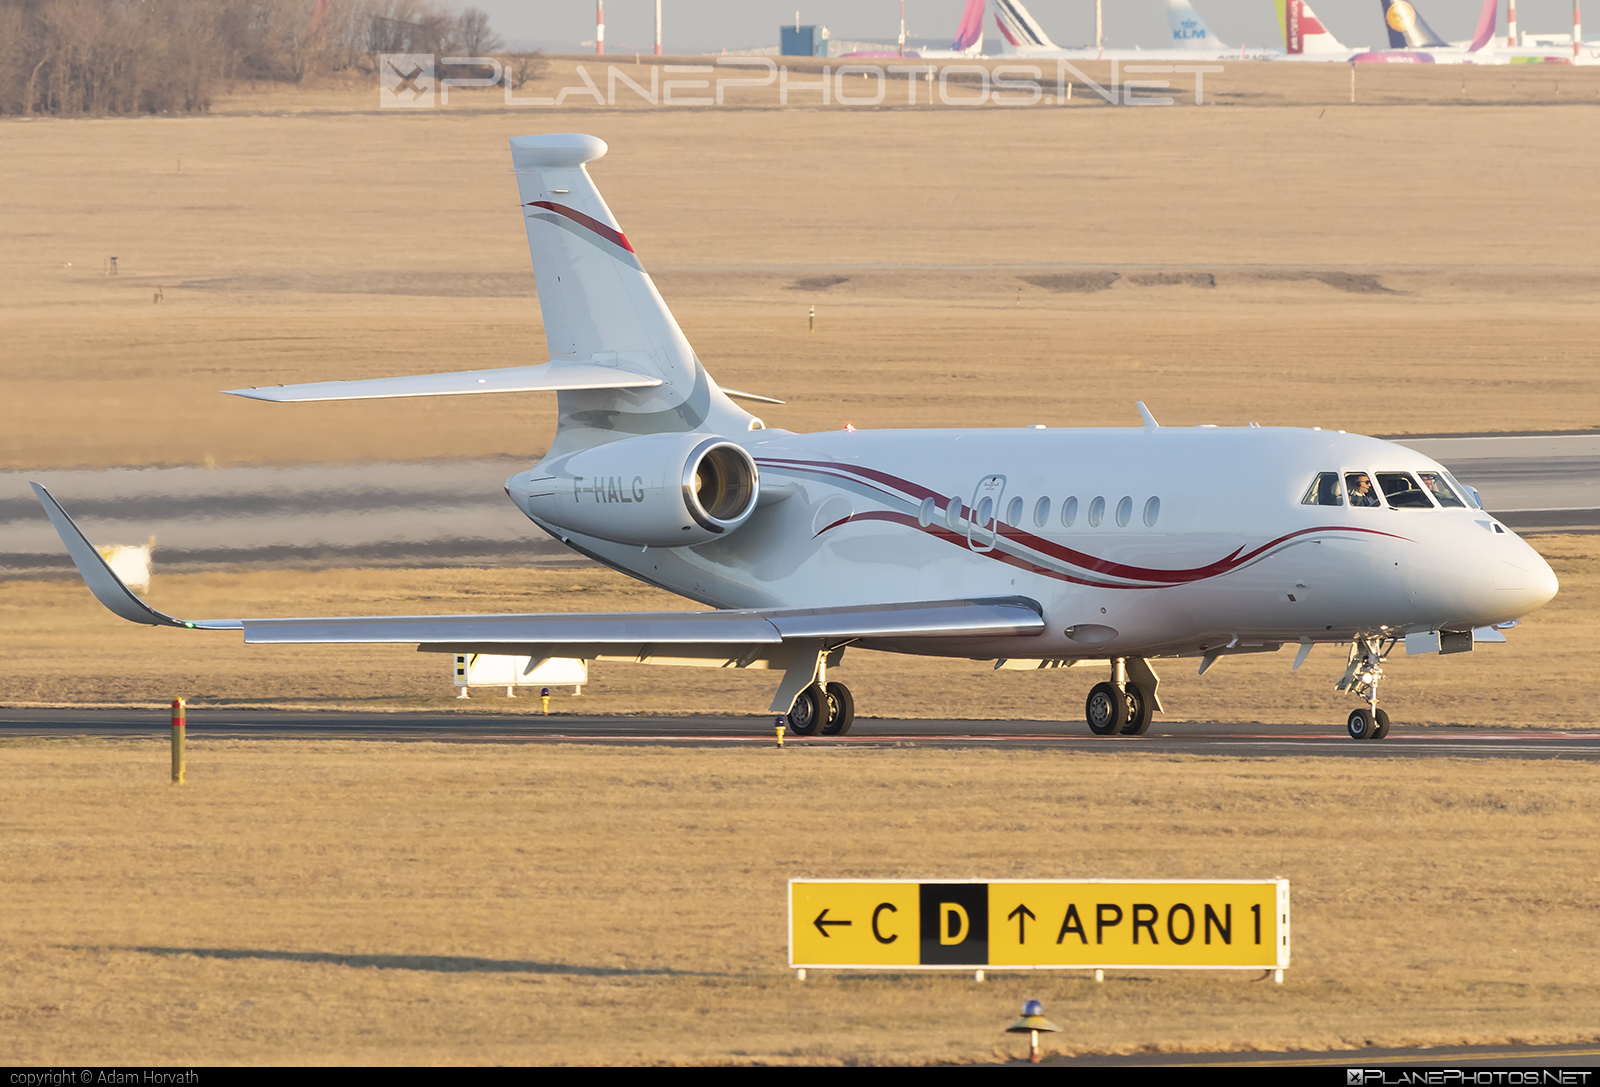 Dassault Falcon 2000LXS - F-HALG operated by AH Fleet Services #ahfleetservices #dassault #dassaultfalcon #dassaultfalcon2000lxs #falcon2000 #falcon2000lxs